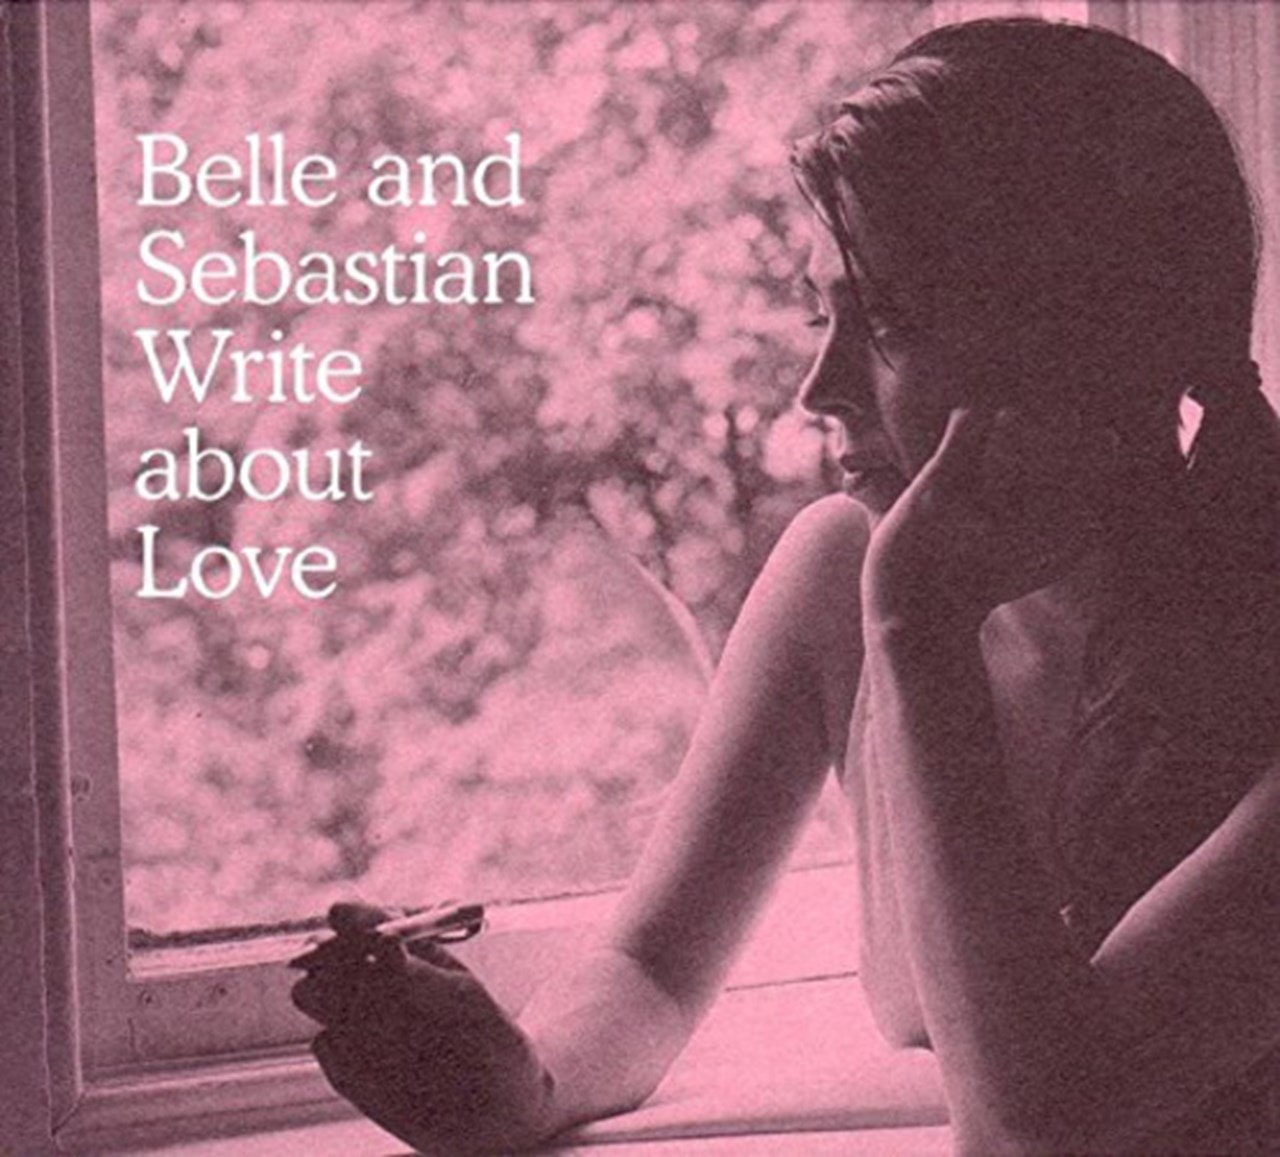 Belle and Sebastian Write About Love - 1